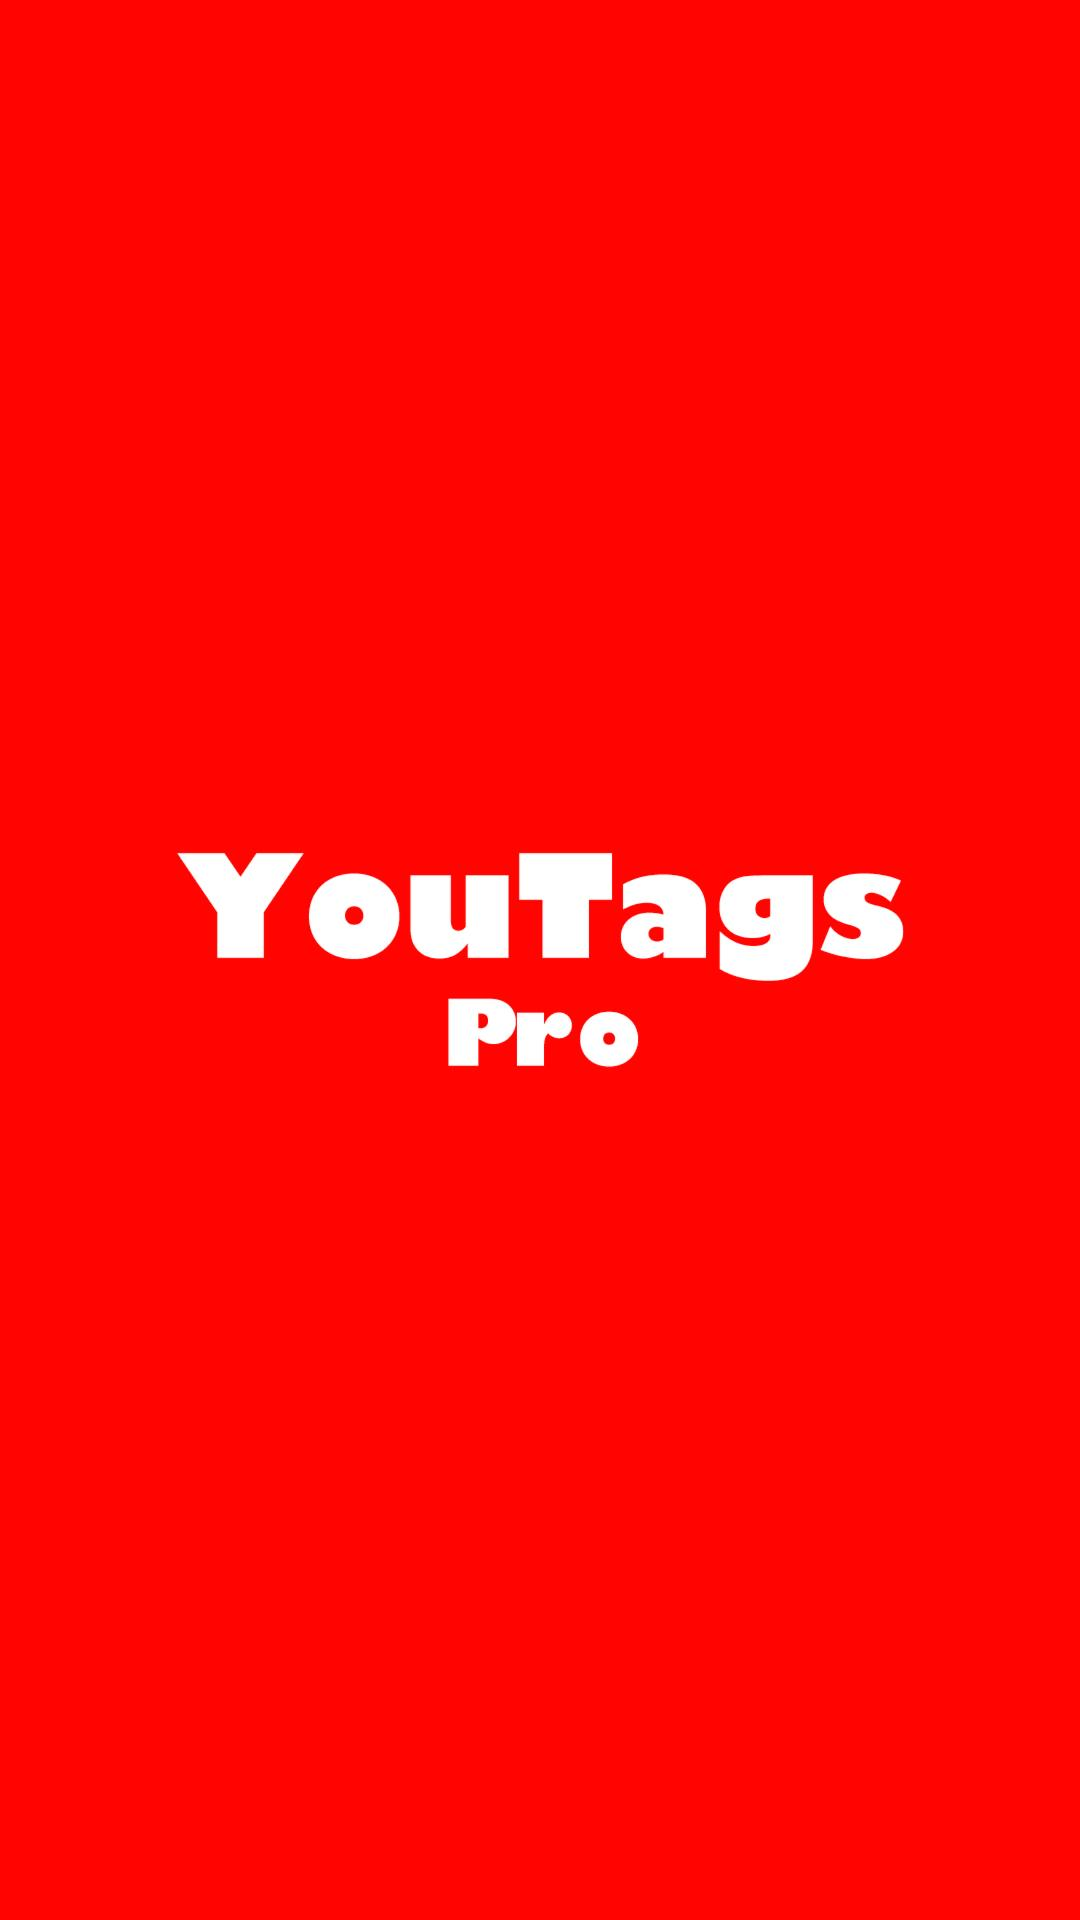 YouTags Pro for Android - APK Download